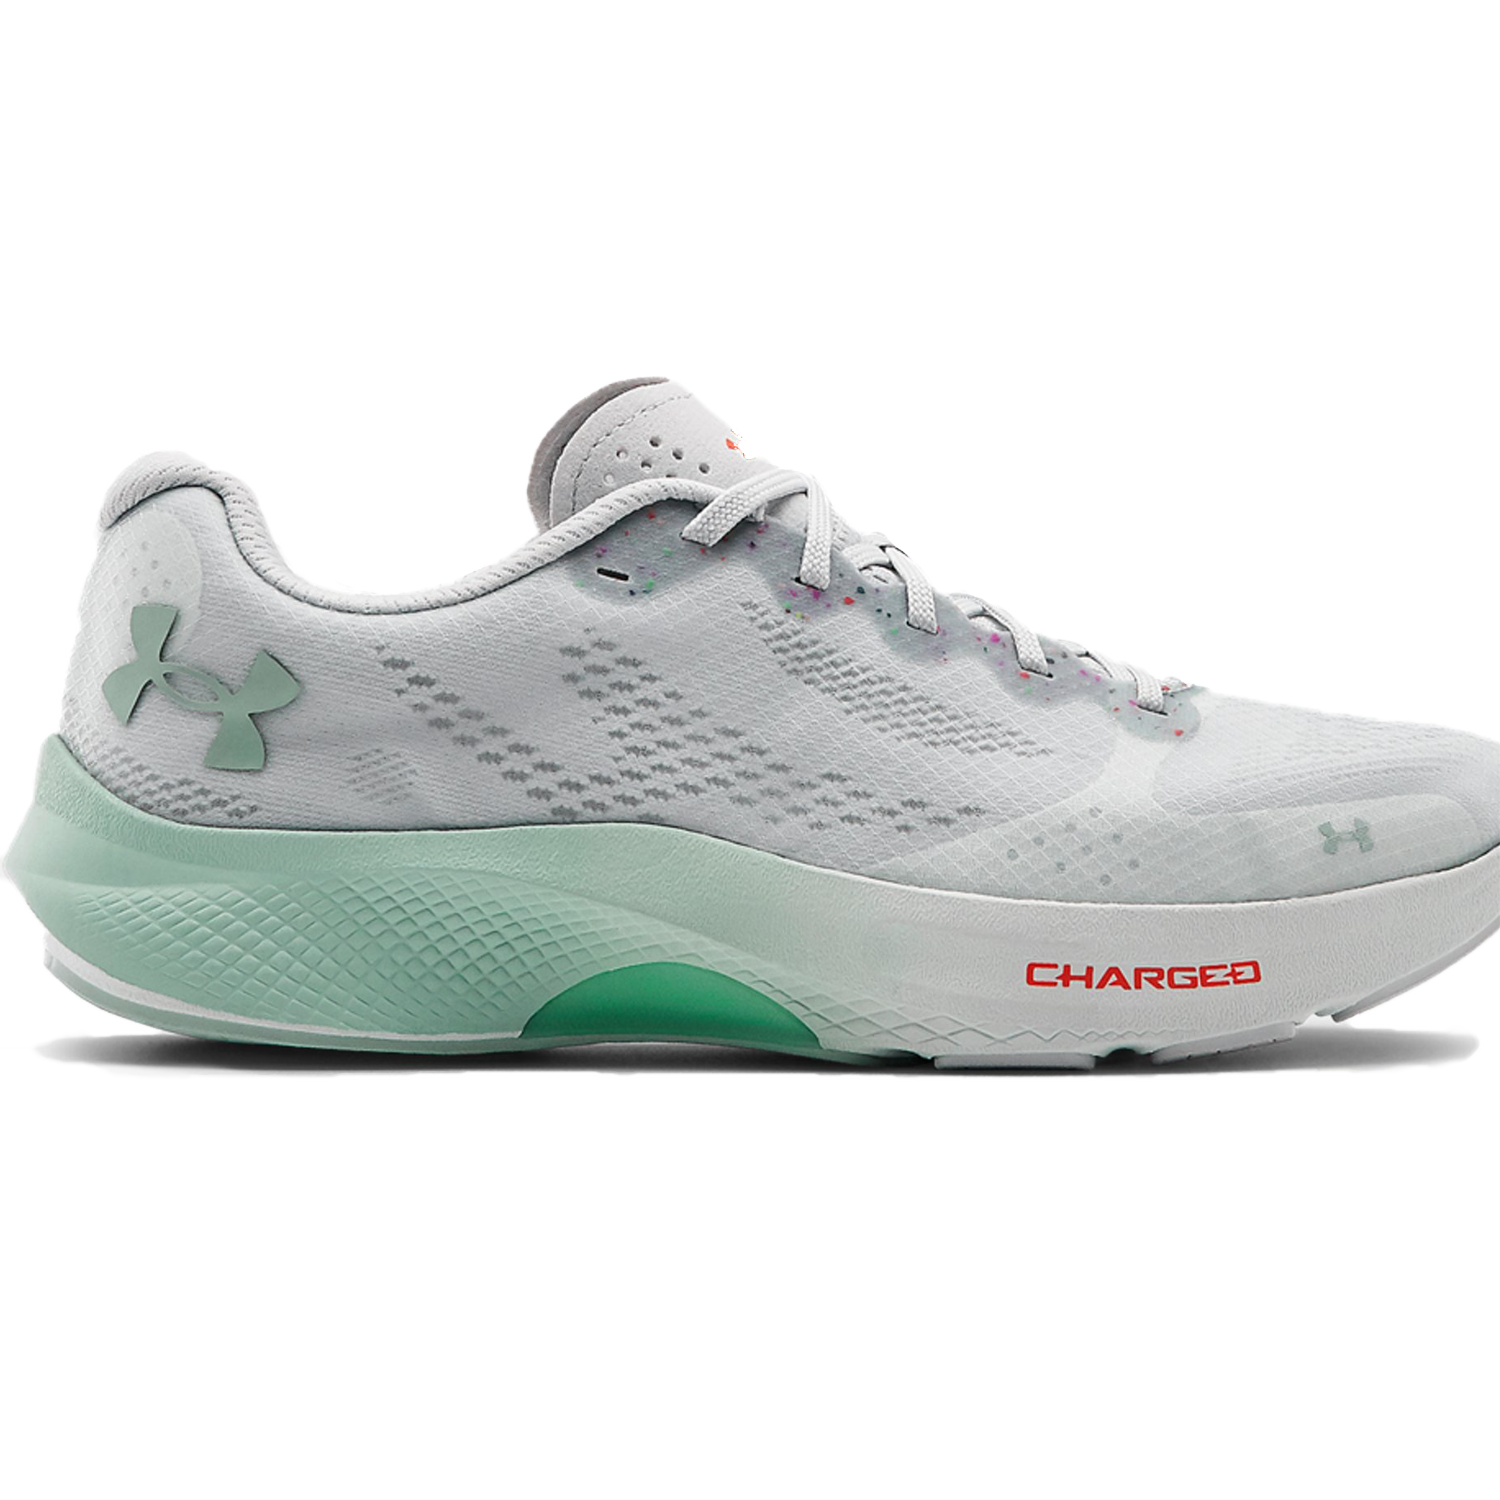 Under Armour Charged Pulse sidan